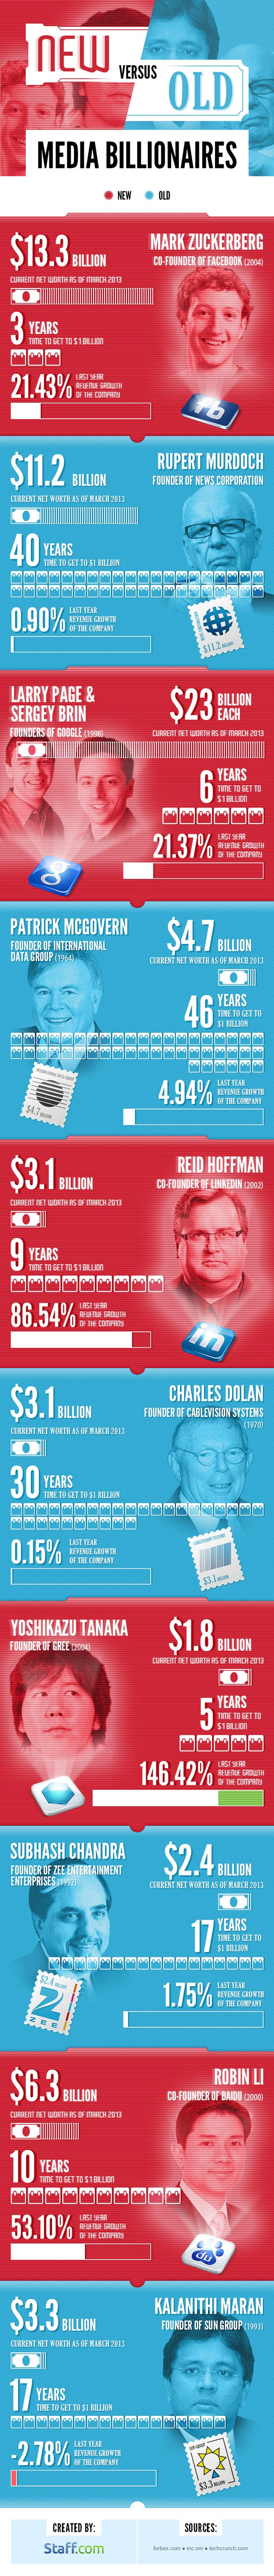 Media Billionaires Comparison-Infographic